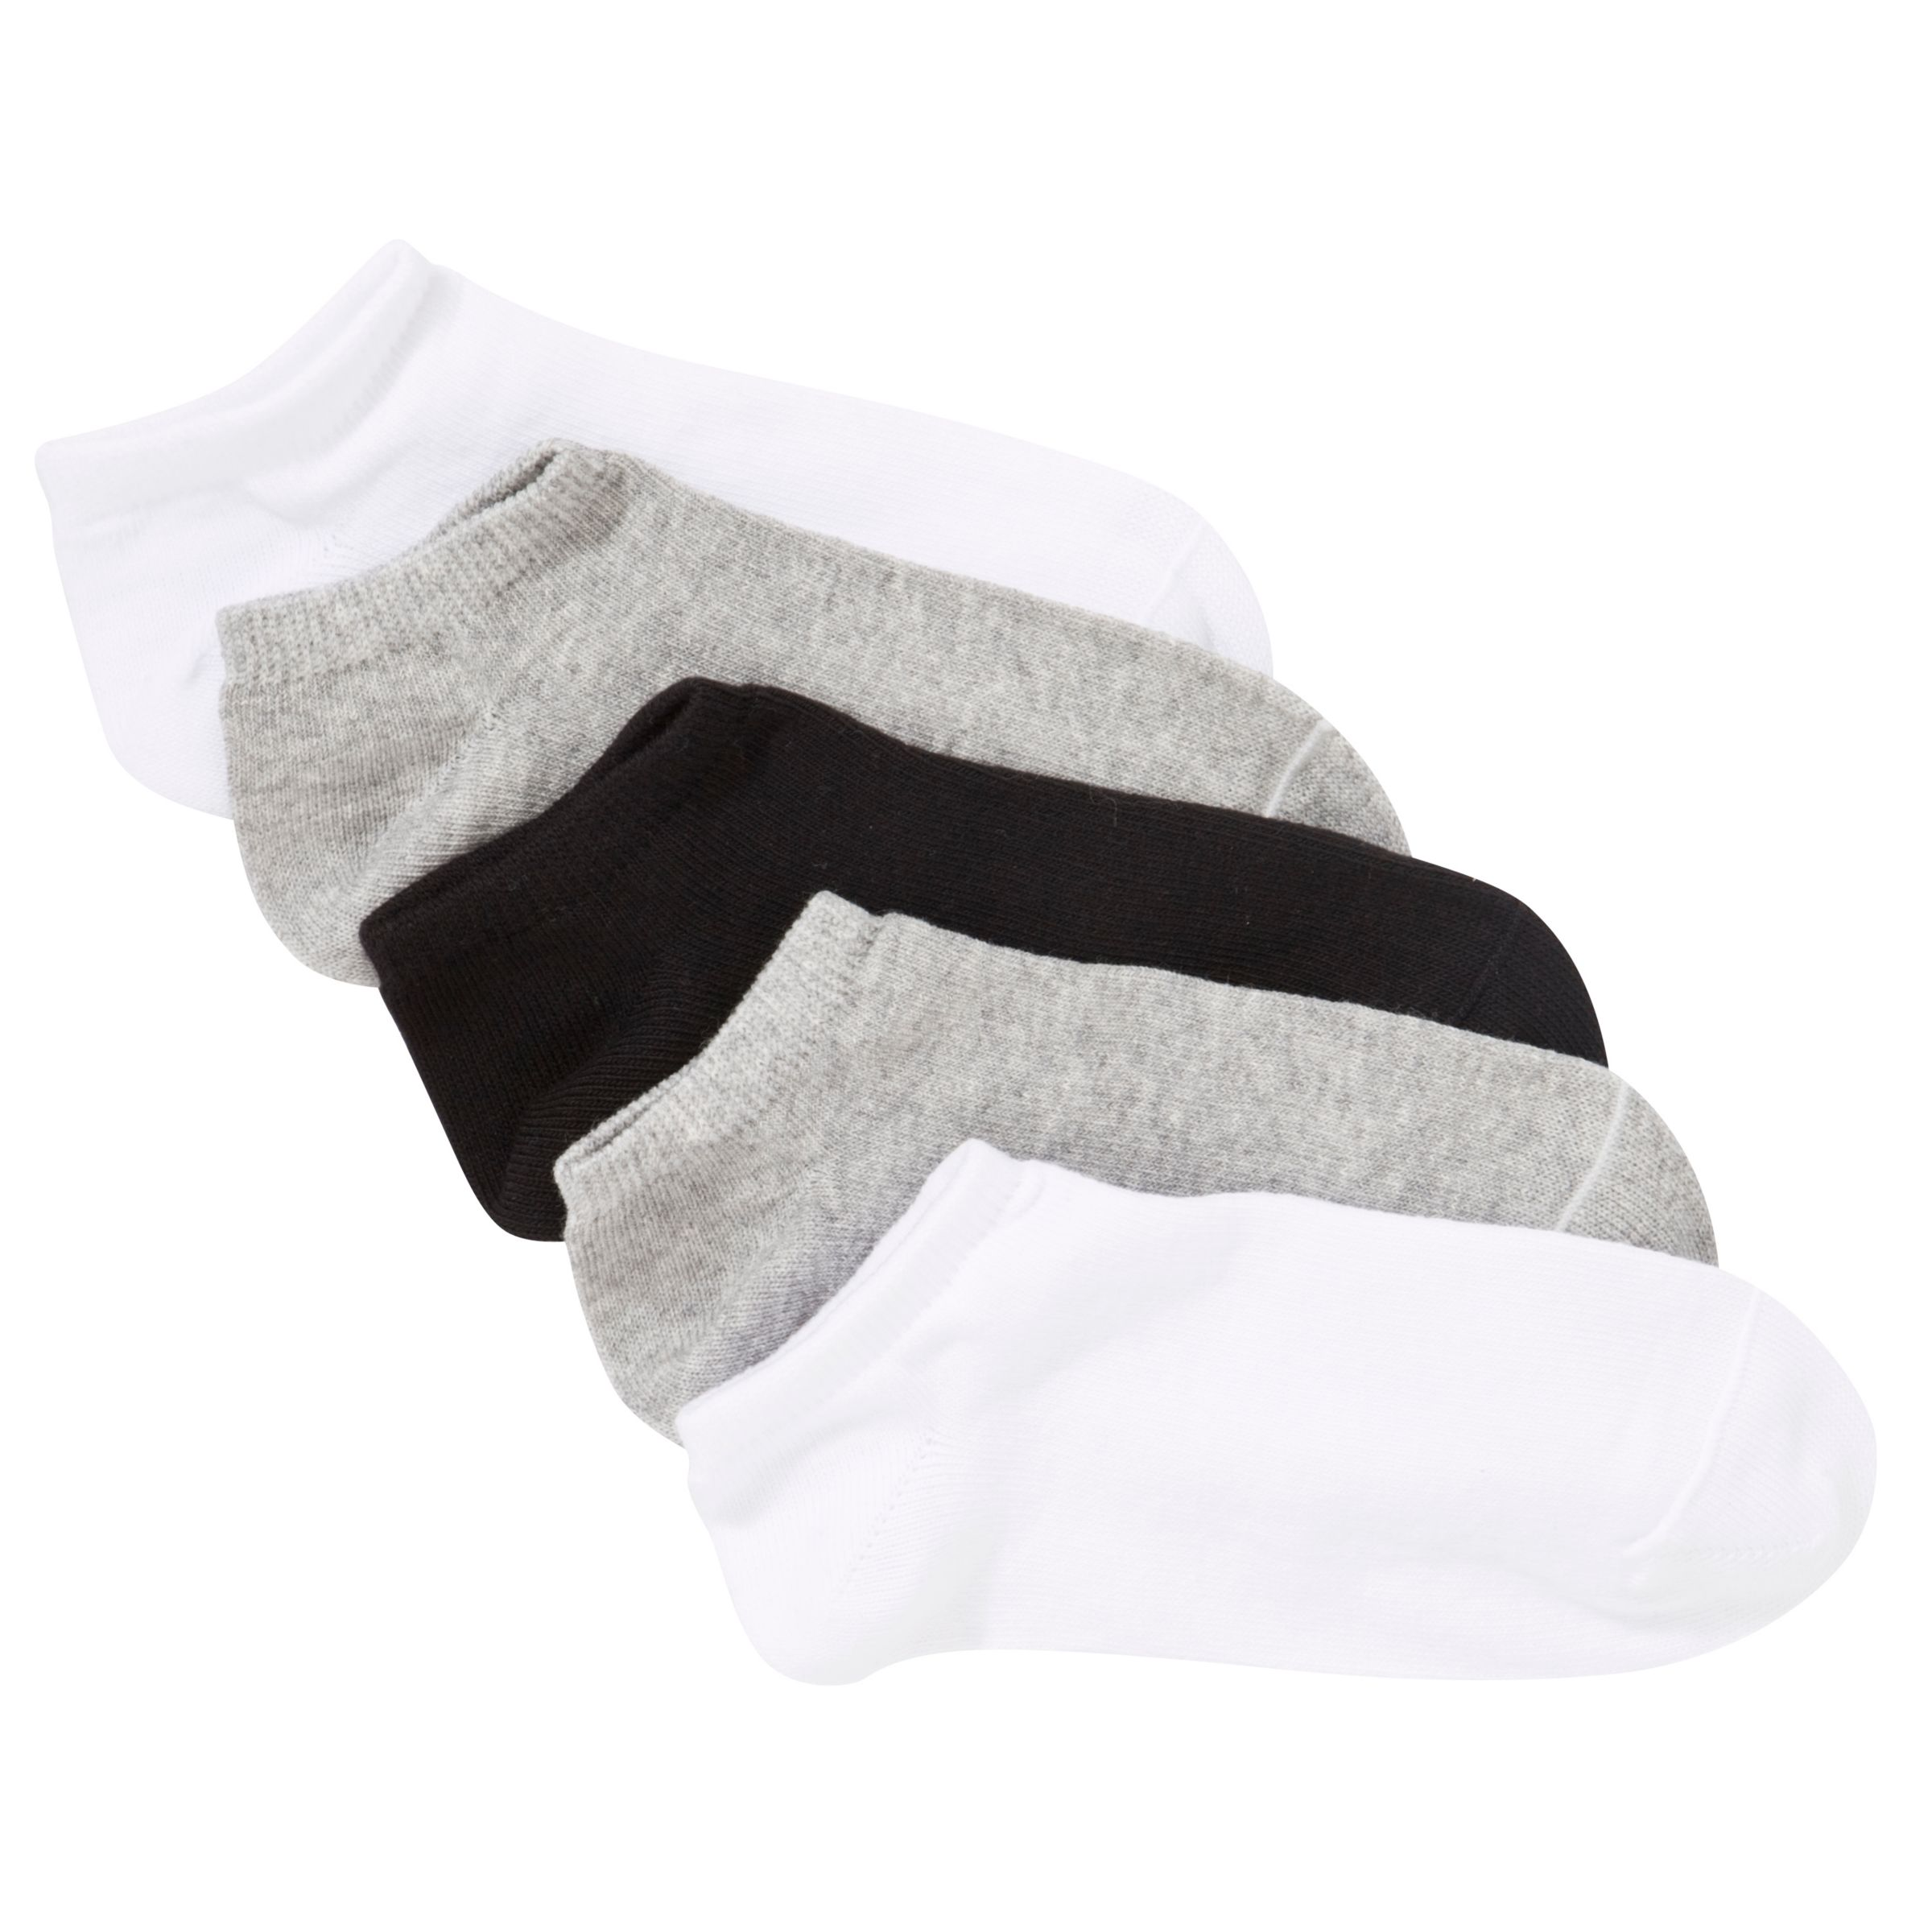 John Lewis Girl Trainer Socks, Pack of 5, Multi